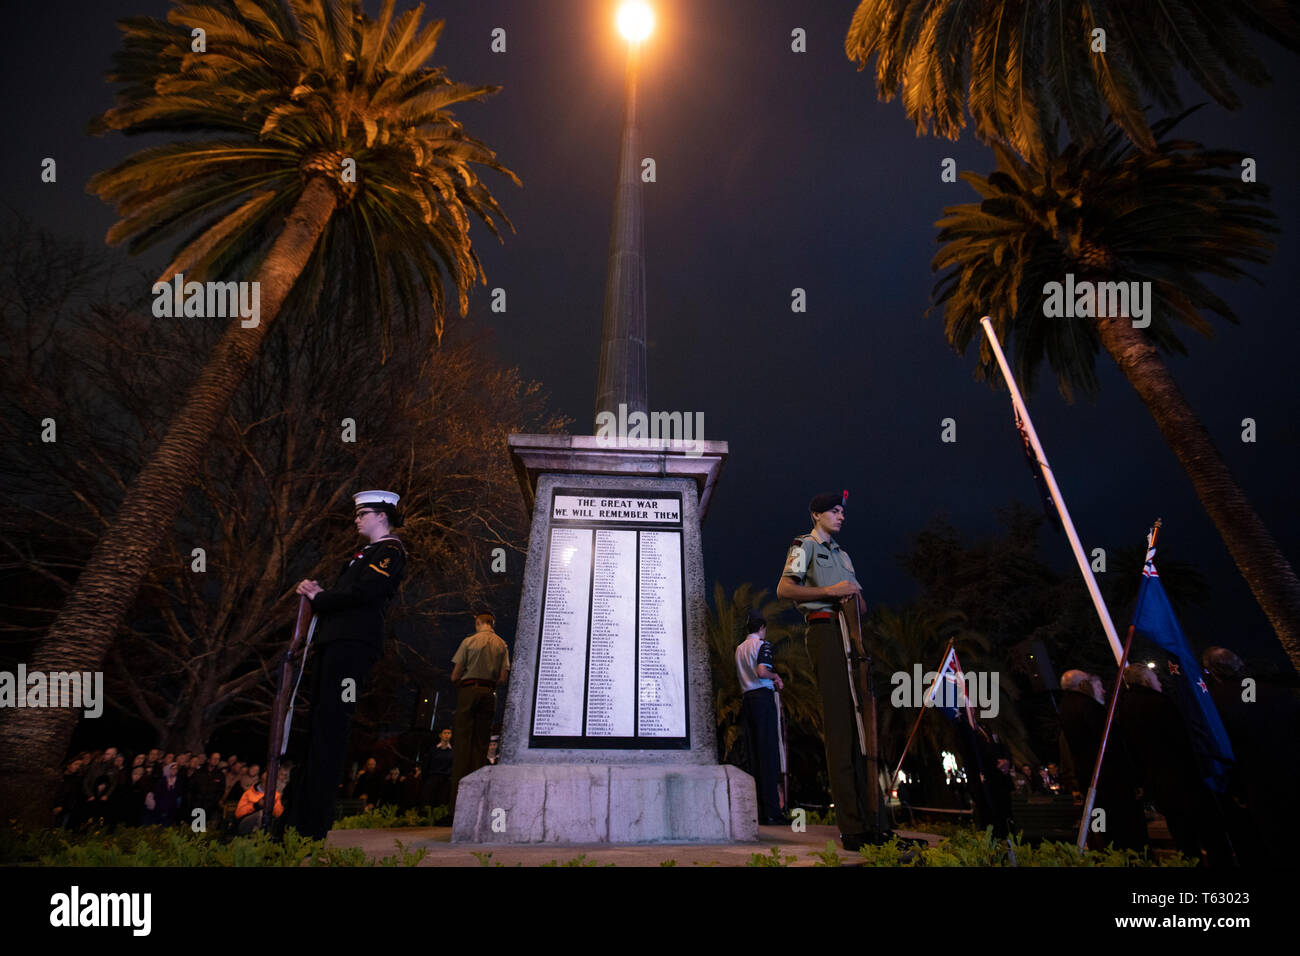 Picture by Tim Cuff - 25 April 2019 - ANZAC Day services, Nelson, New Zealand Stock Photo